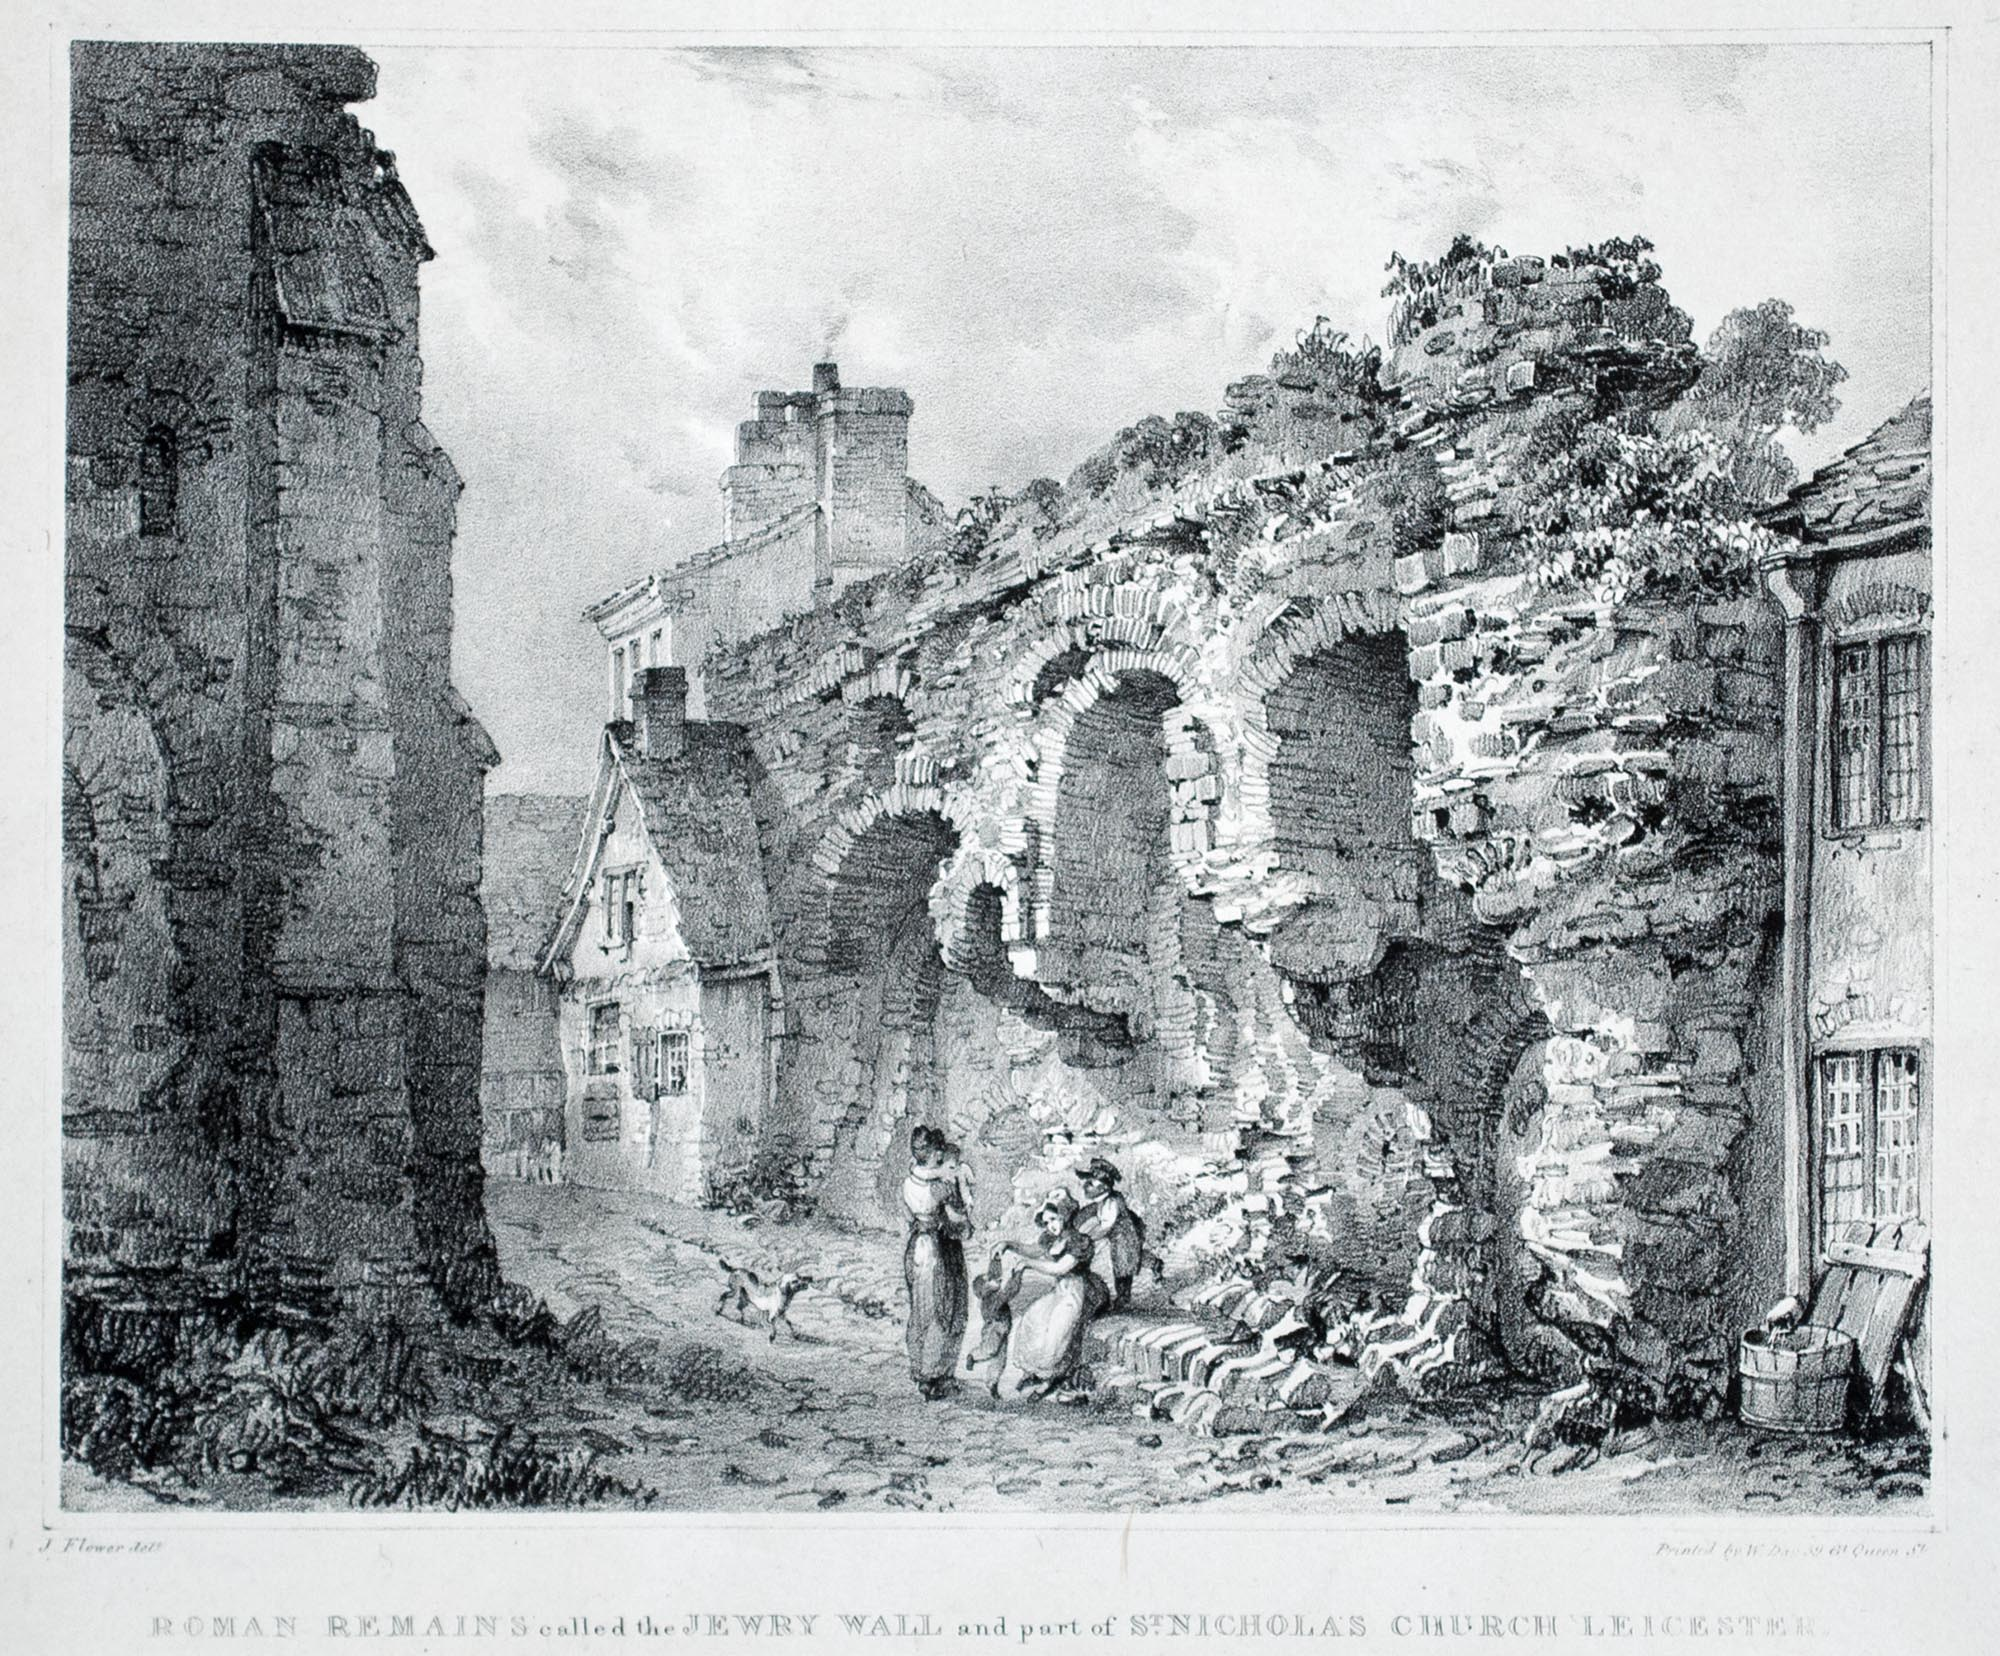 'Roman Remains called the Jewry Wall' by J. Flower, 1836 -